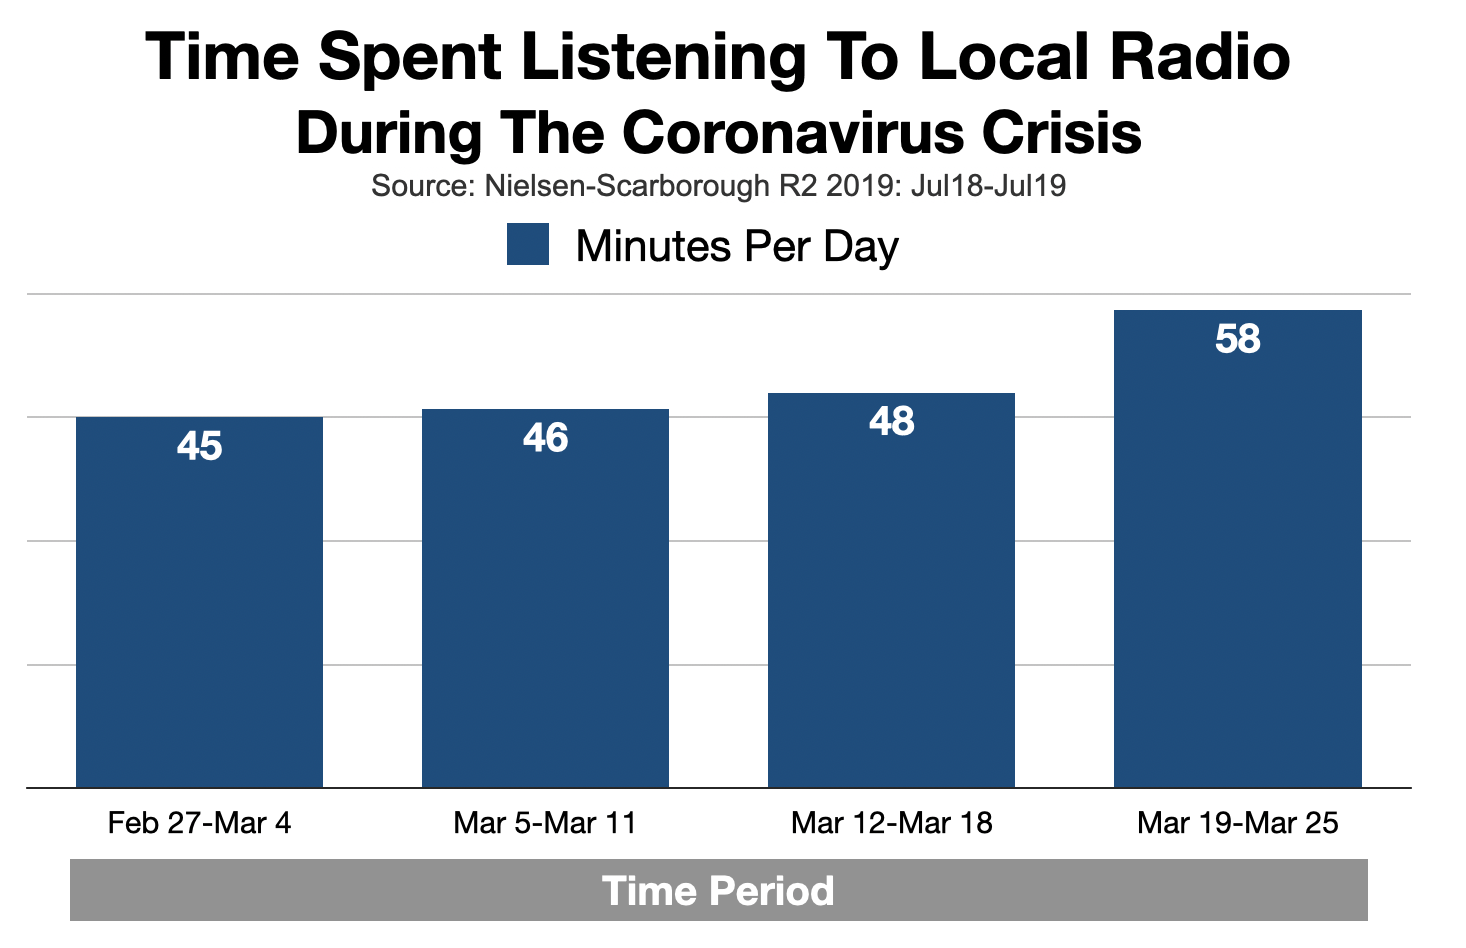 Advertise In Philadelphia: Time Spent Listening To Radio